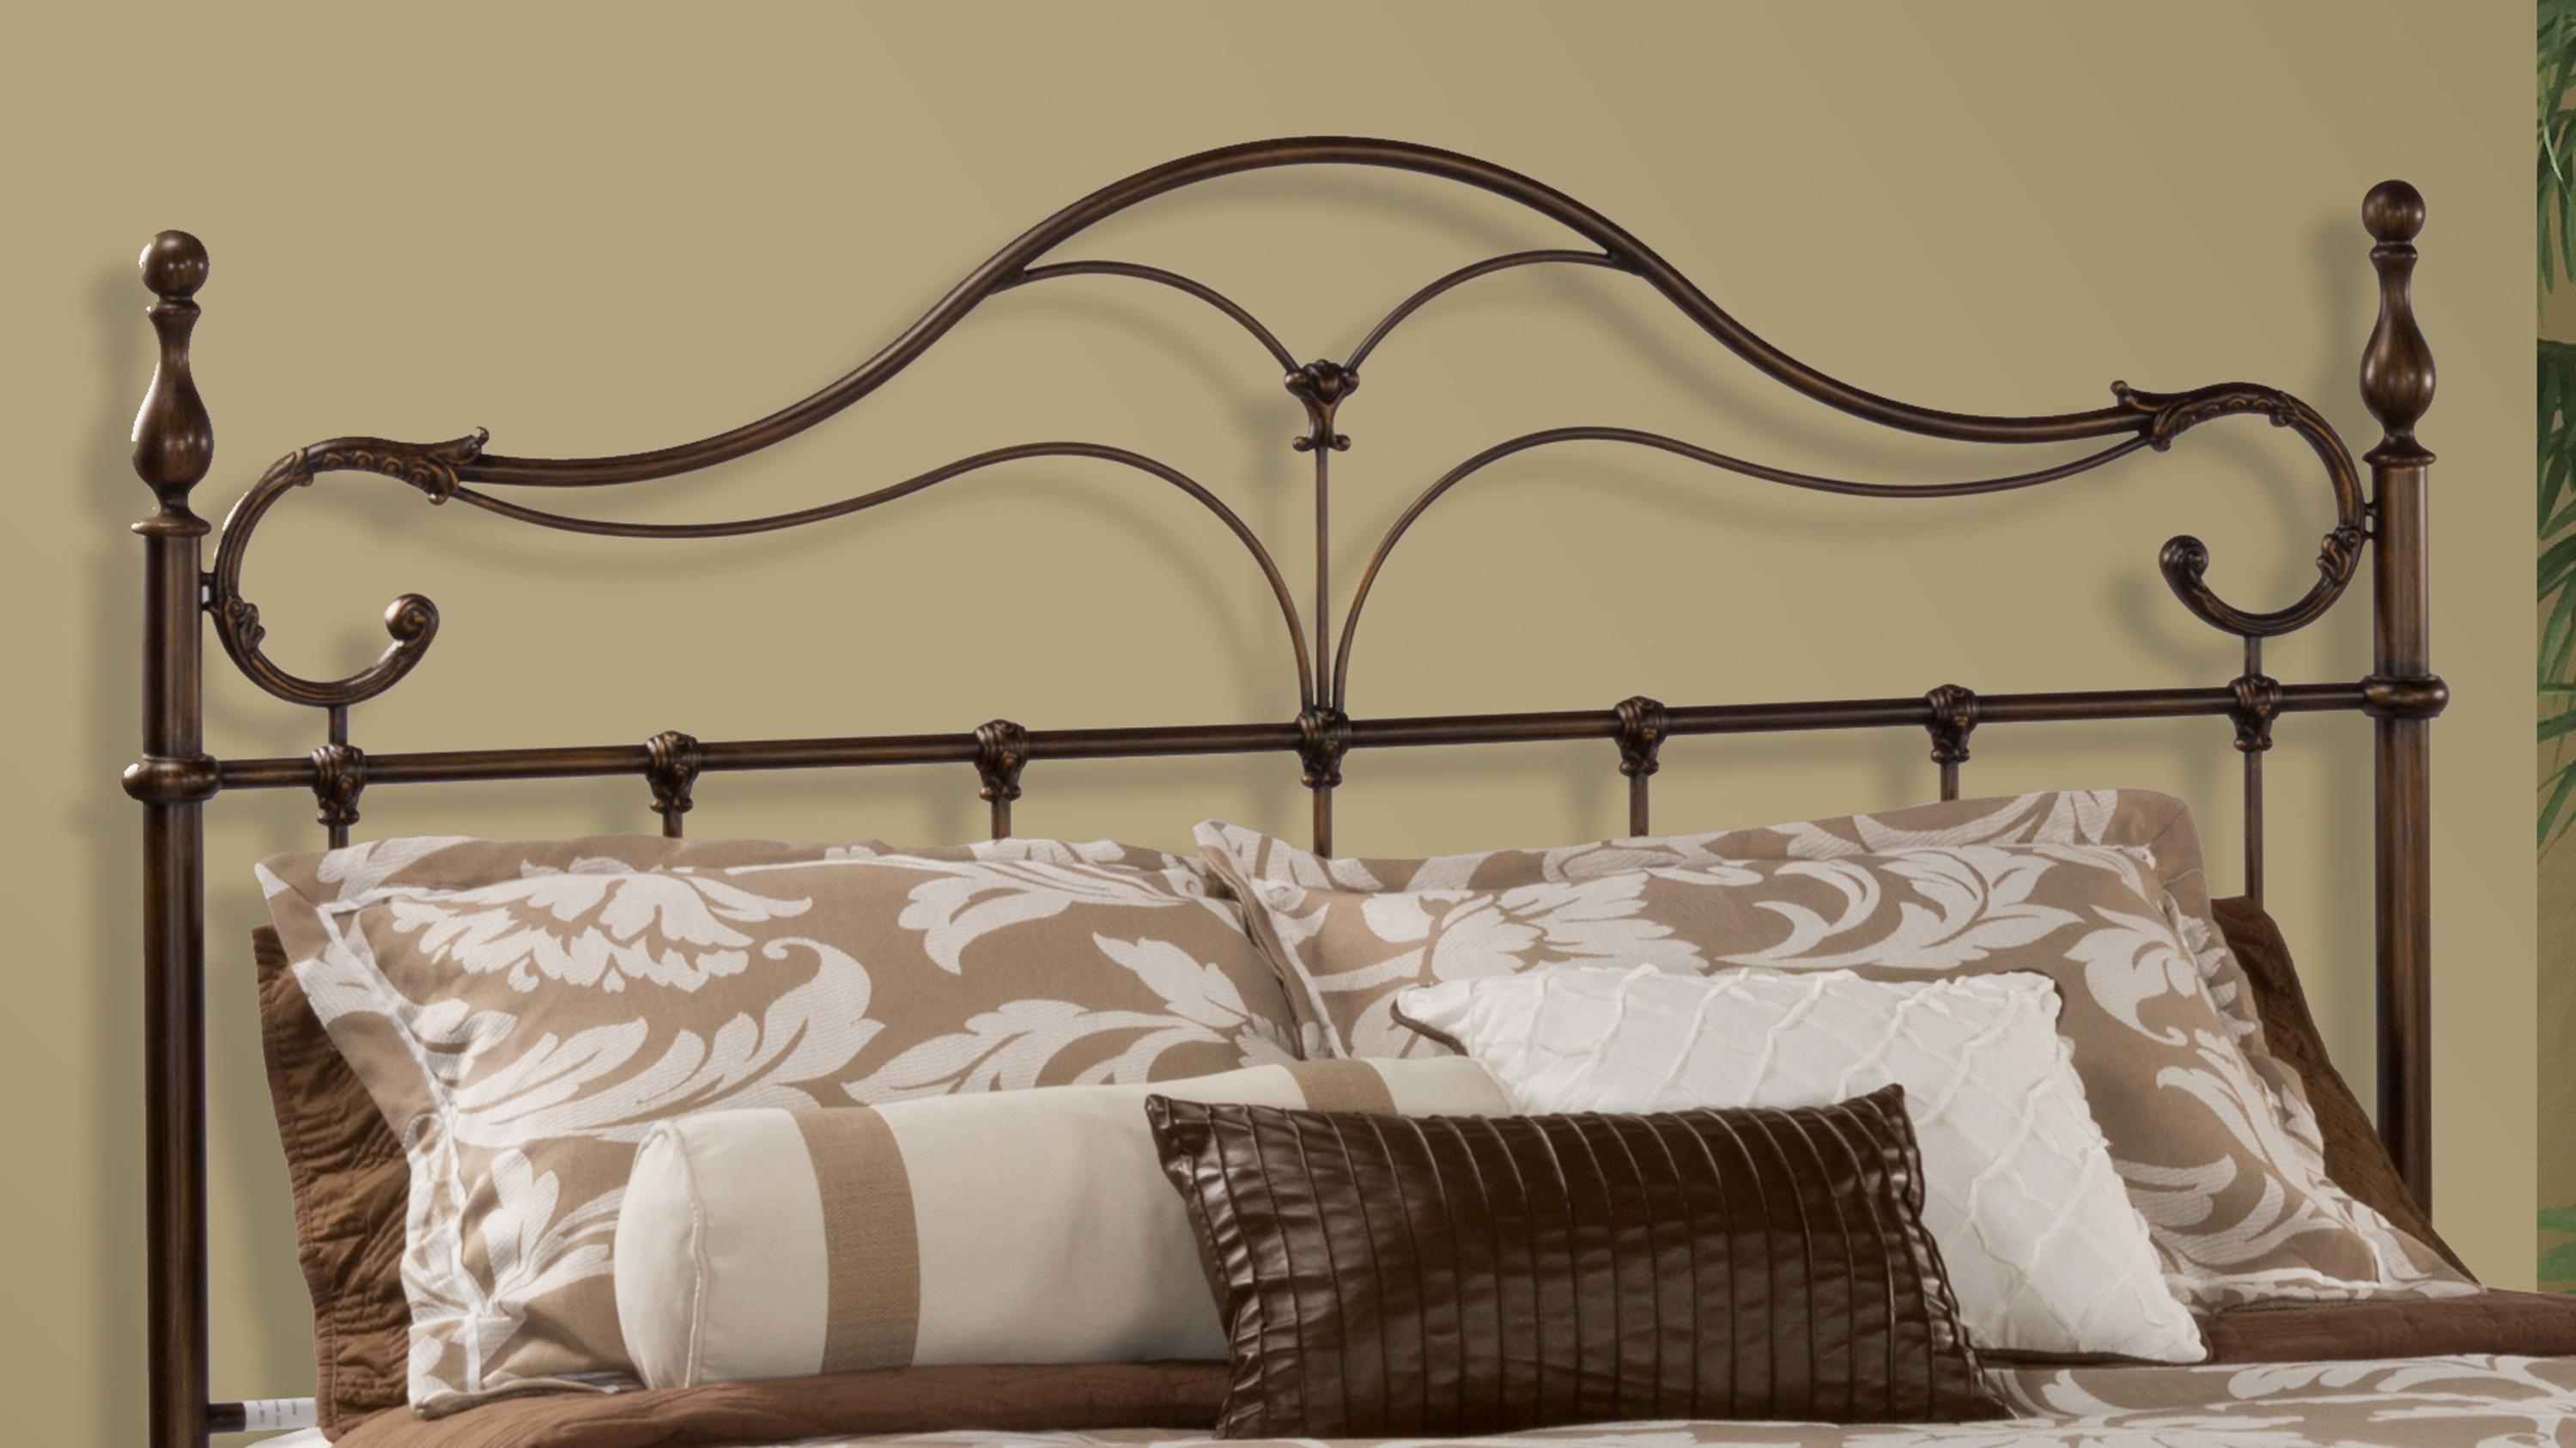 Hillsdale Metal Beds Bennett King Headboard and Rails - Item Number: 1249HKR